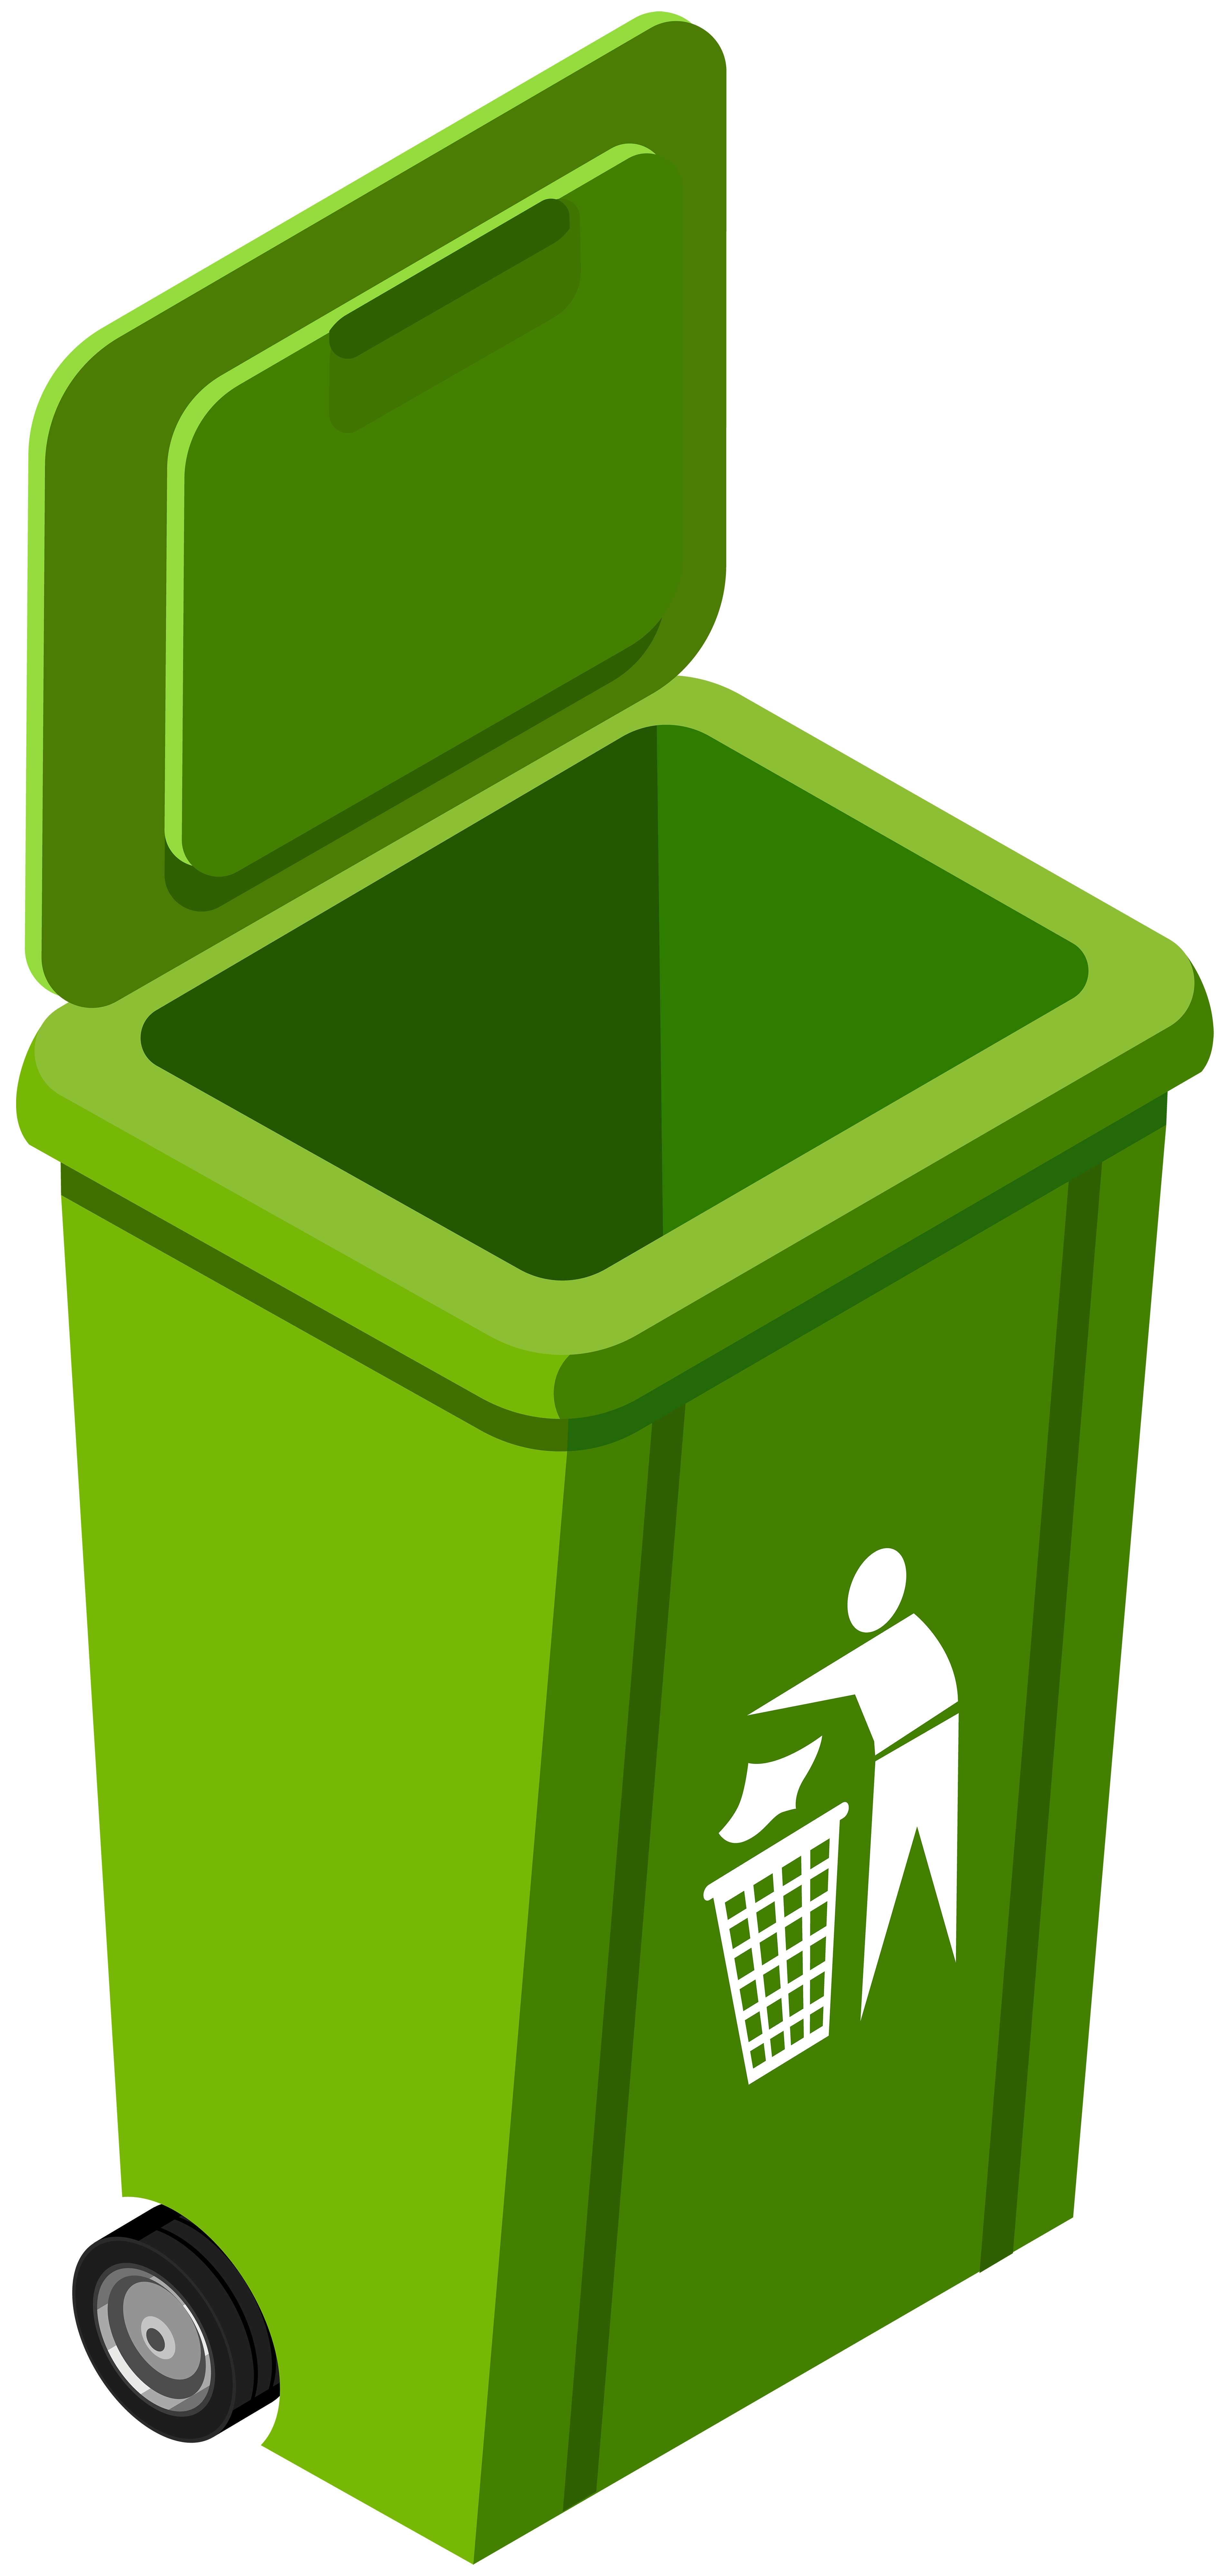 Trash as basketball clipart free picture transparent download Green Trash Can PNG Clip Art Image - Best WEB Clipart picture transparent download